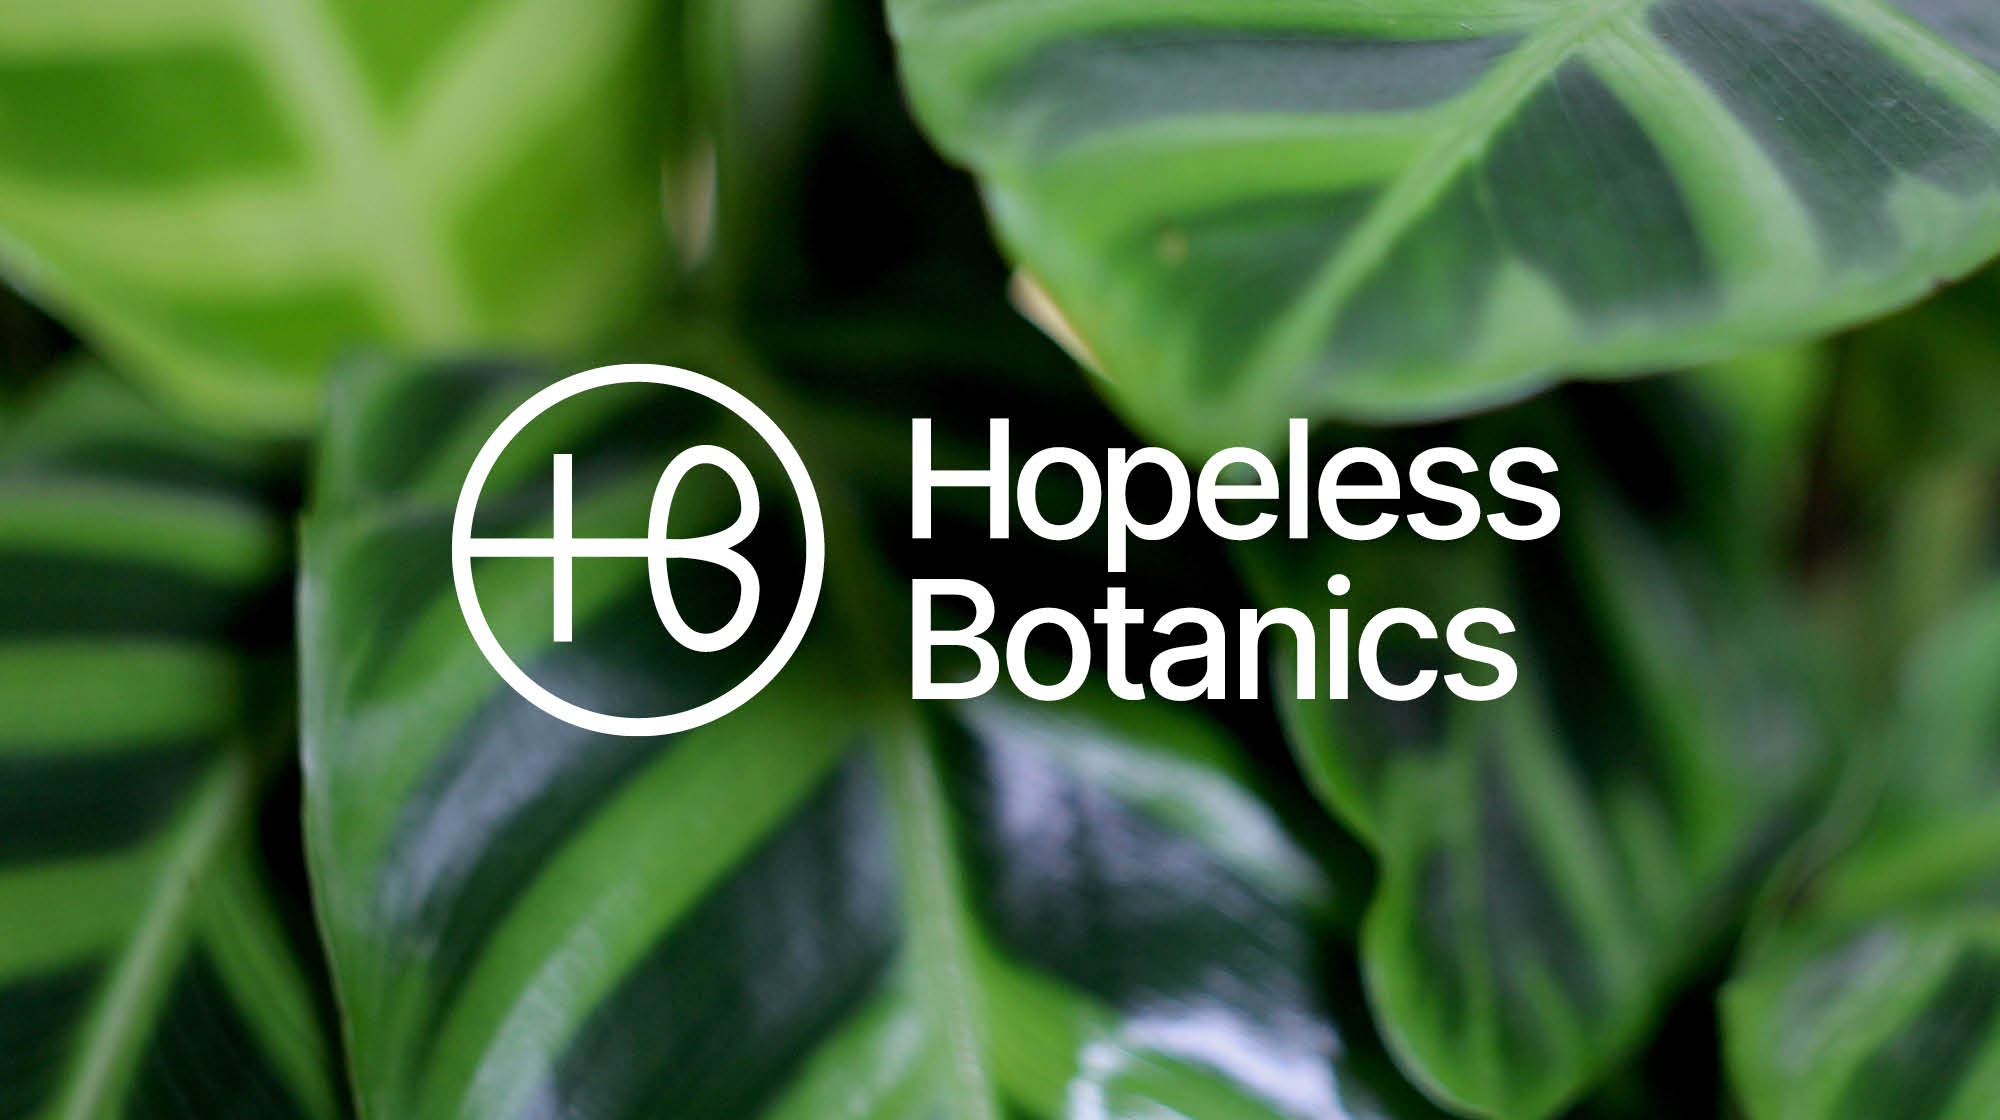 Cover image: Hopeless Botanics